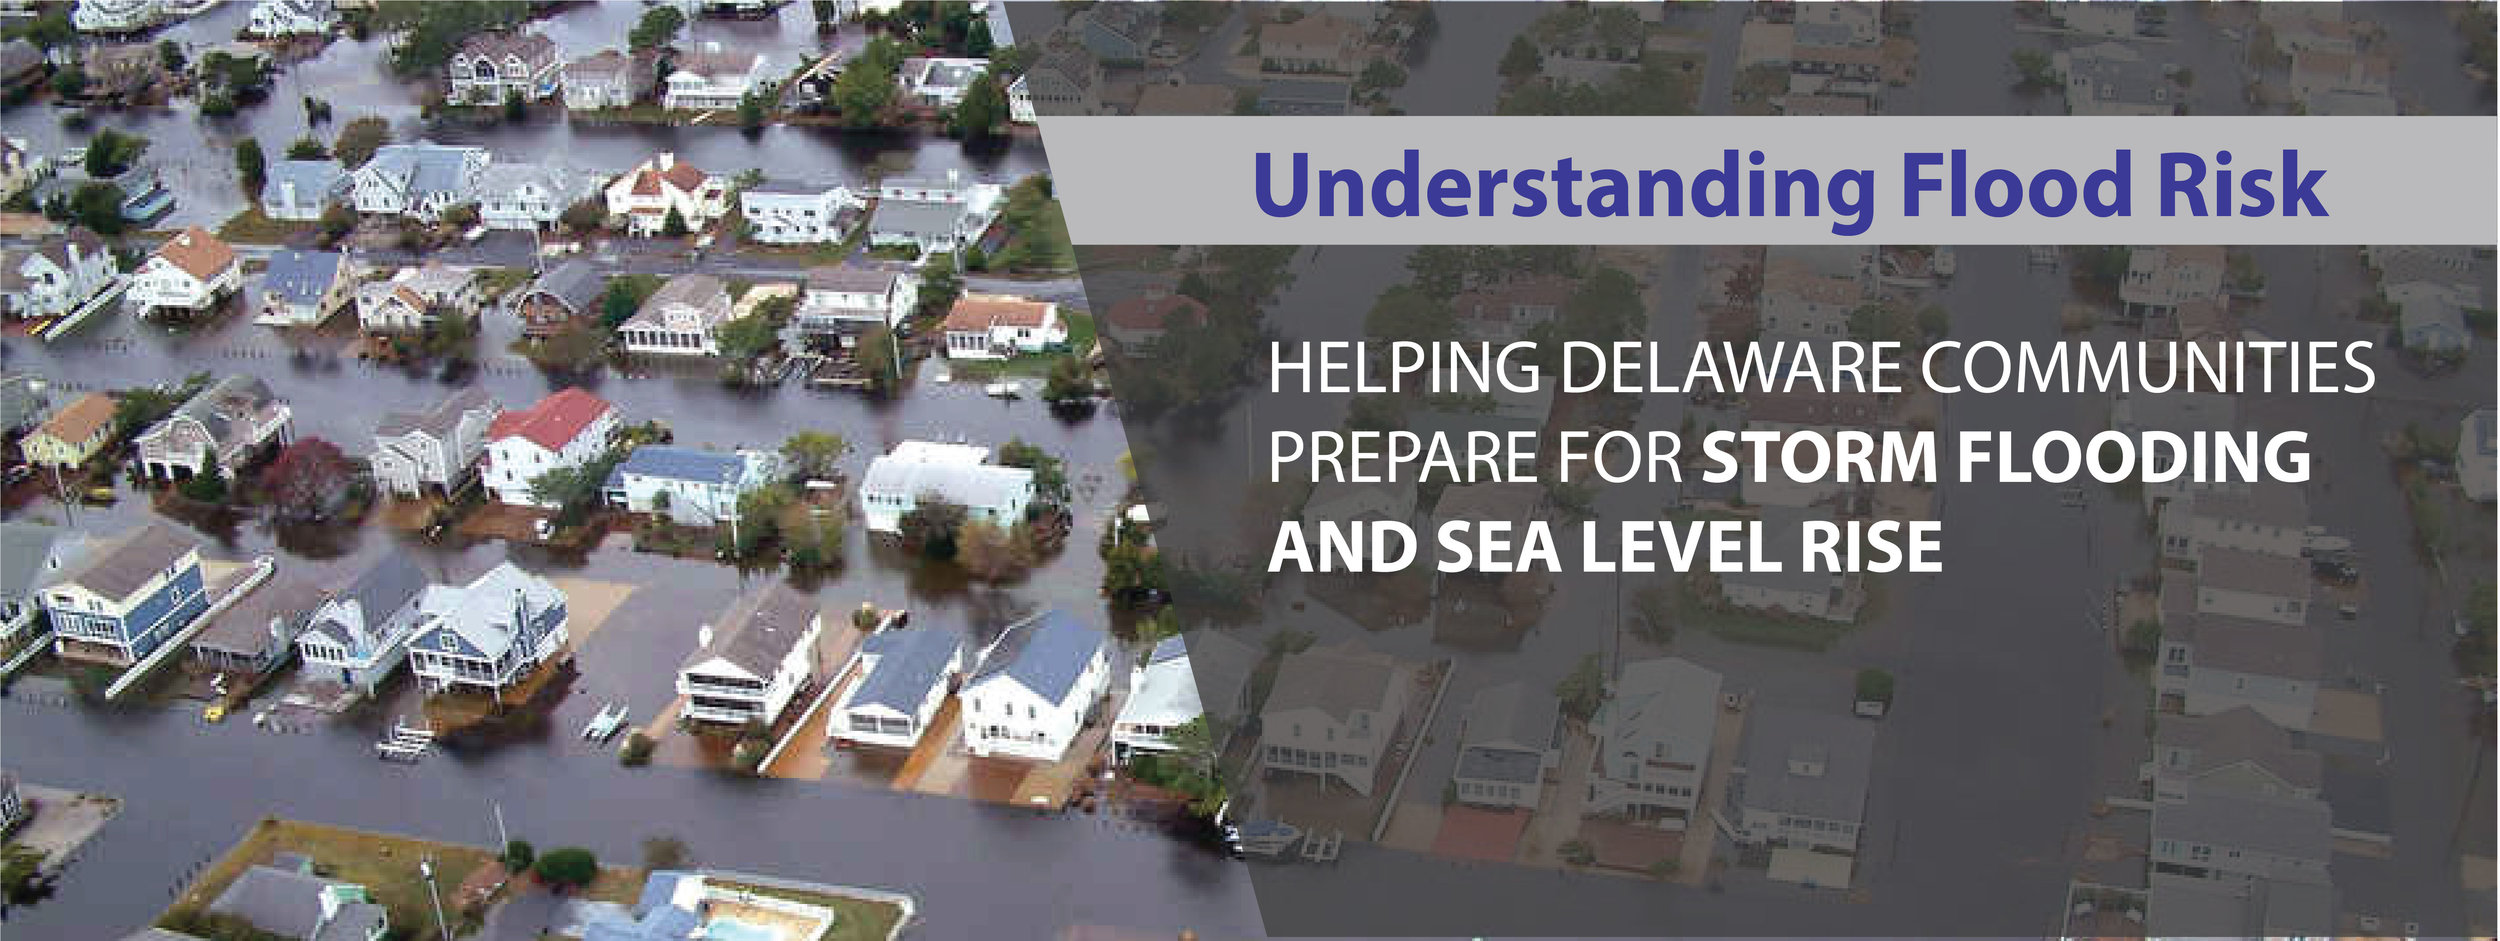 Understanding Flood Risk: Helping Delaware Communities Prepare for Storm Flooding and Sea Level Rise